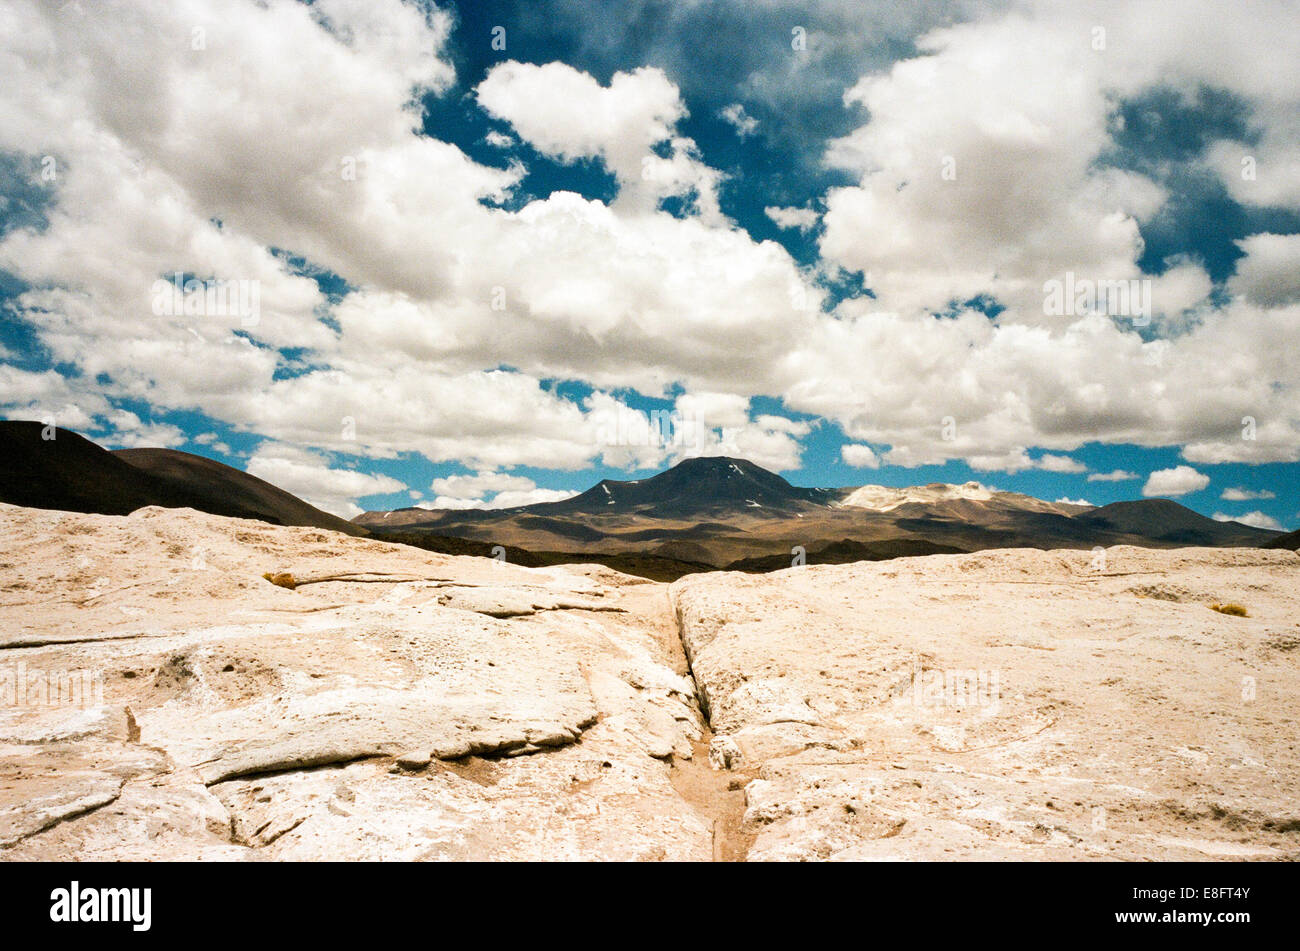 Chile, San Pedro de Atacam, Picture of mountain - Stock Image